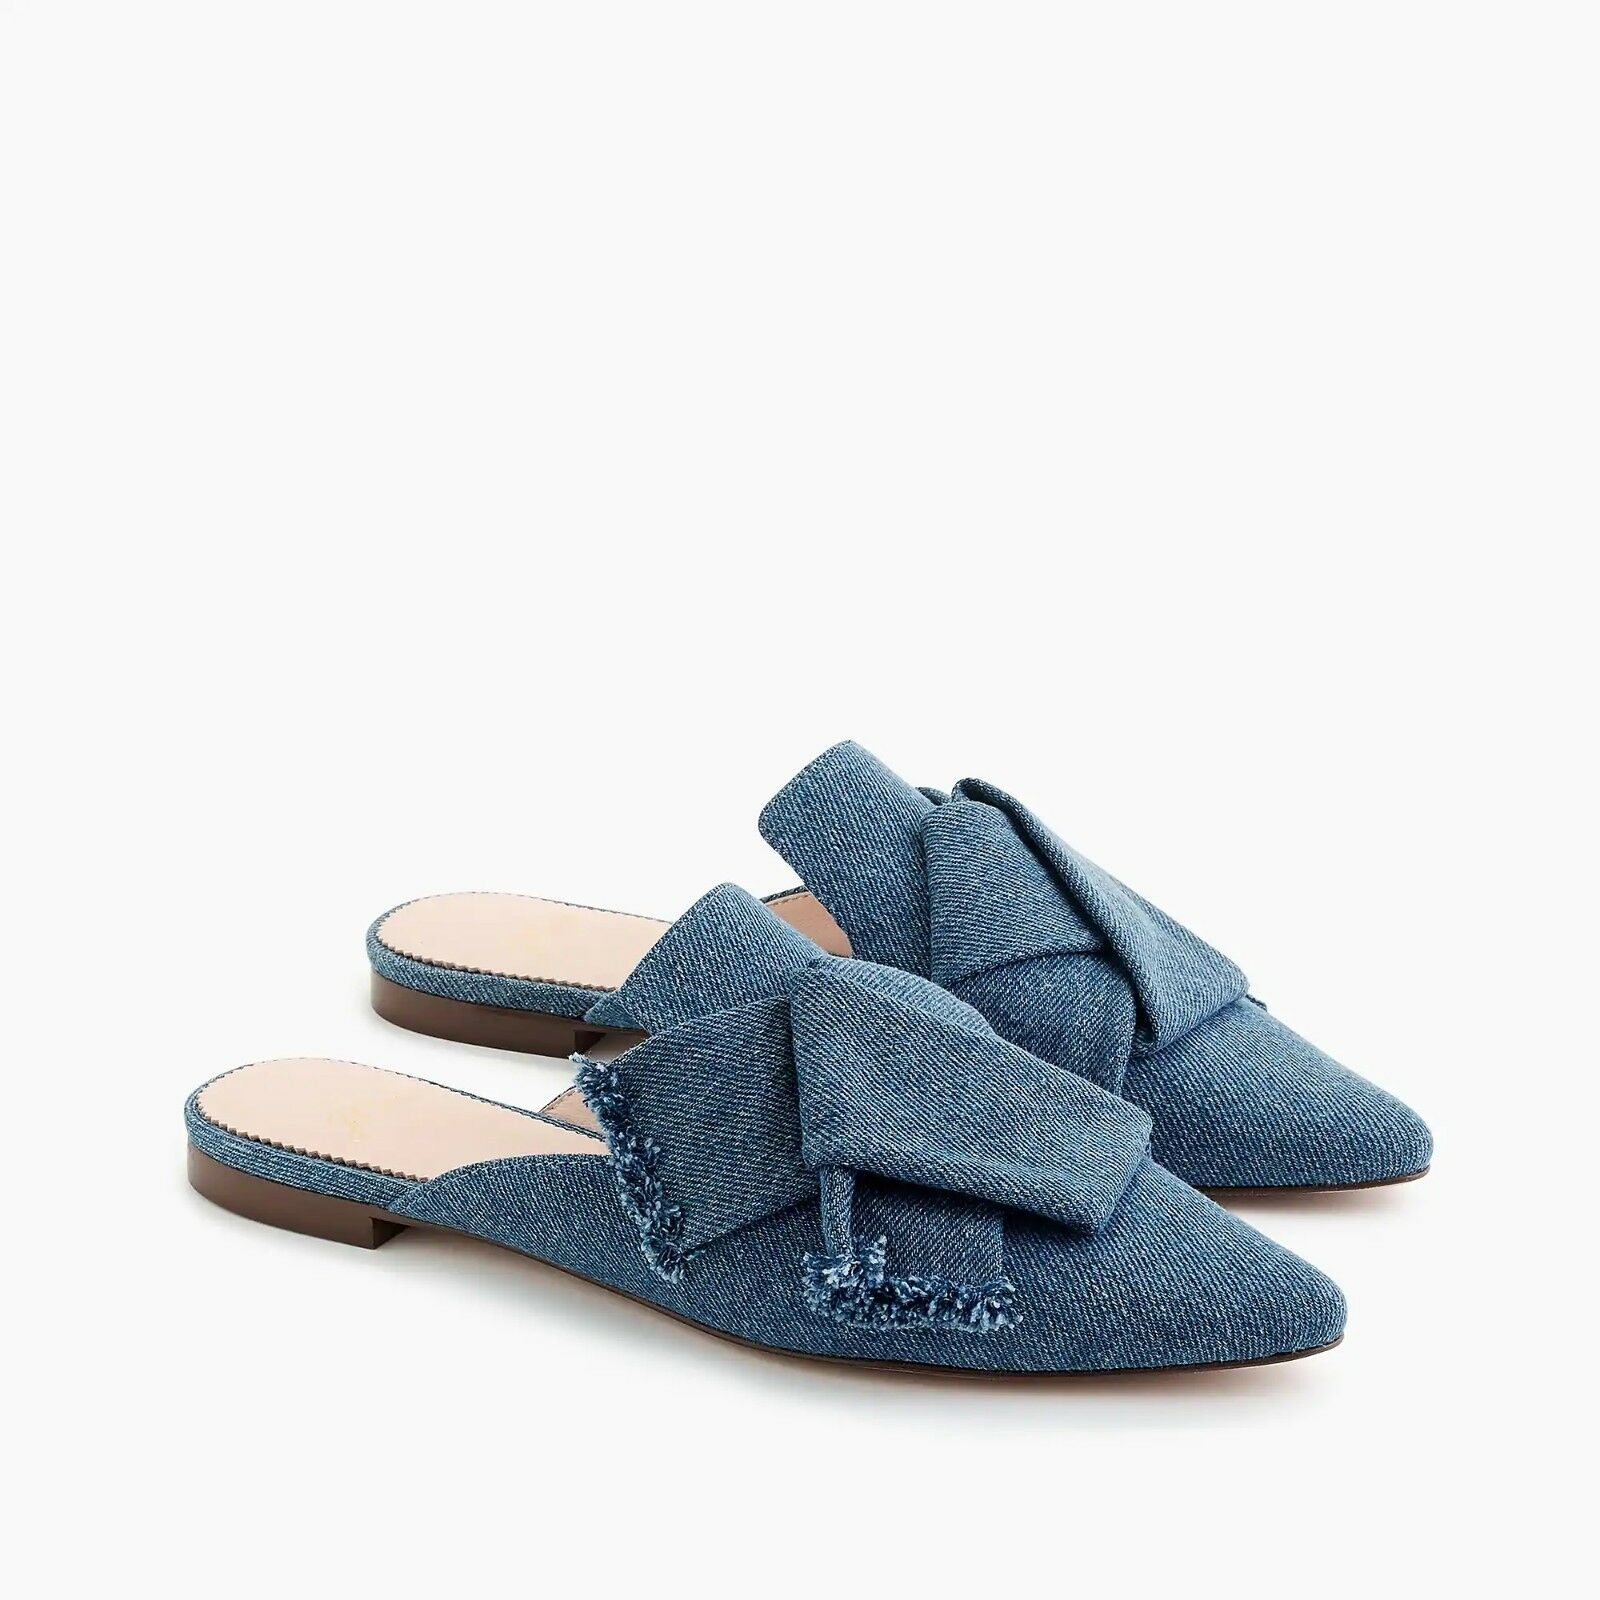 New in Box J. Crew Wouomo Pointed-Toe Slides in Denim - Icy Pool - Dimensione 9